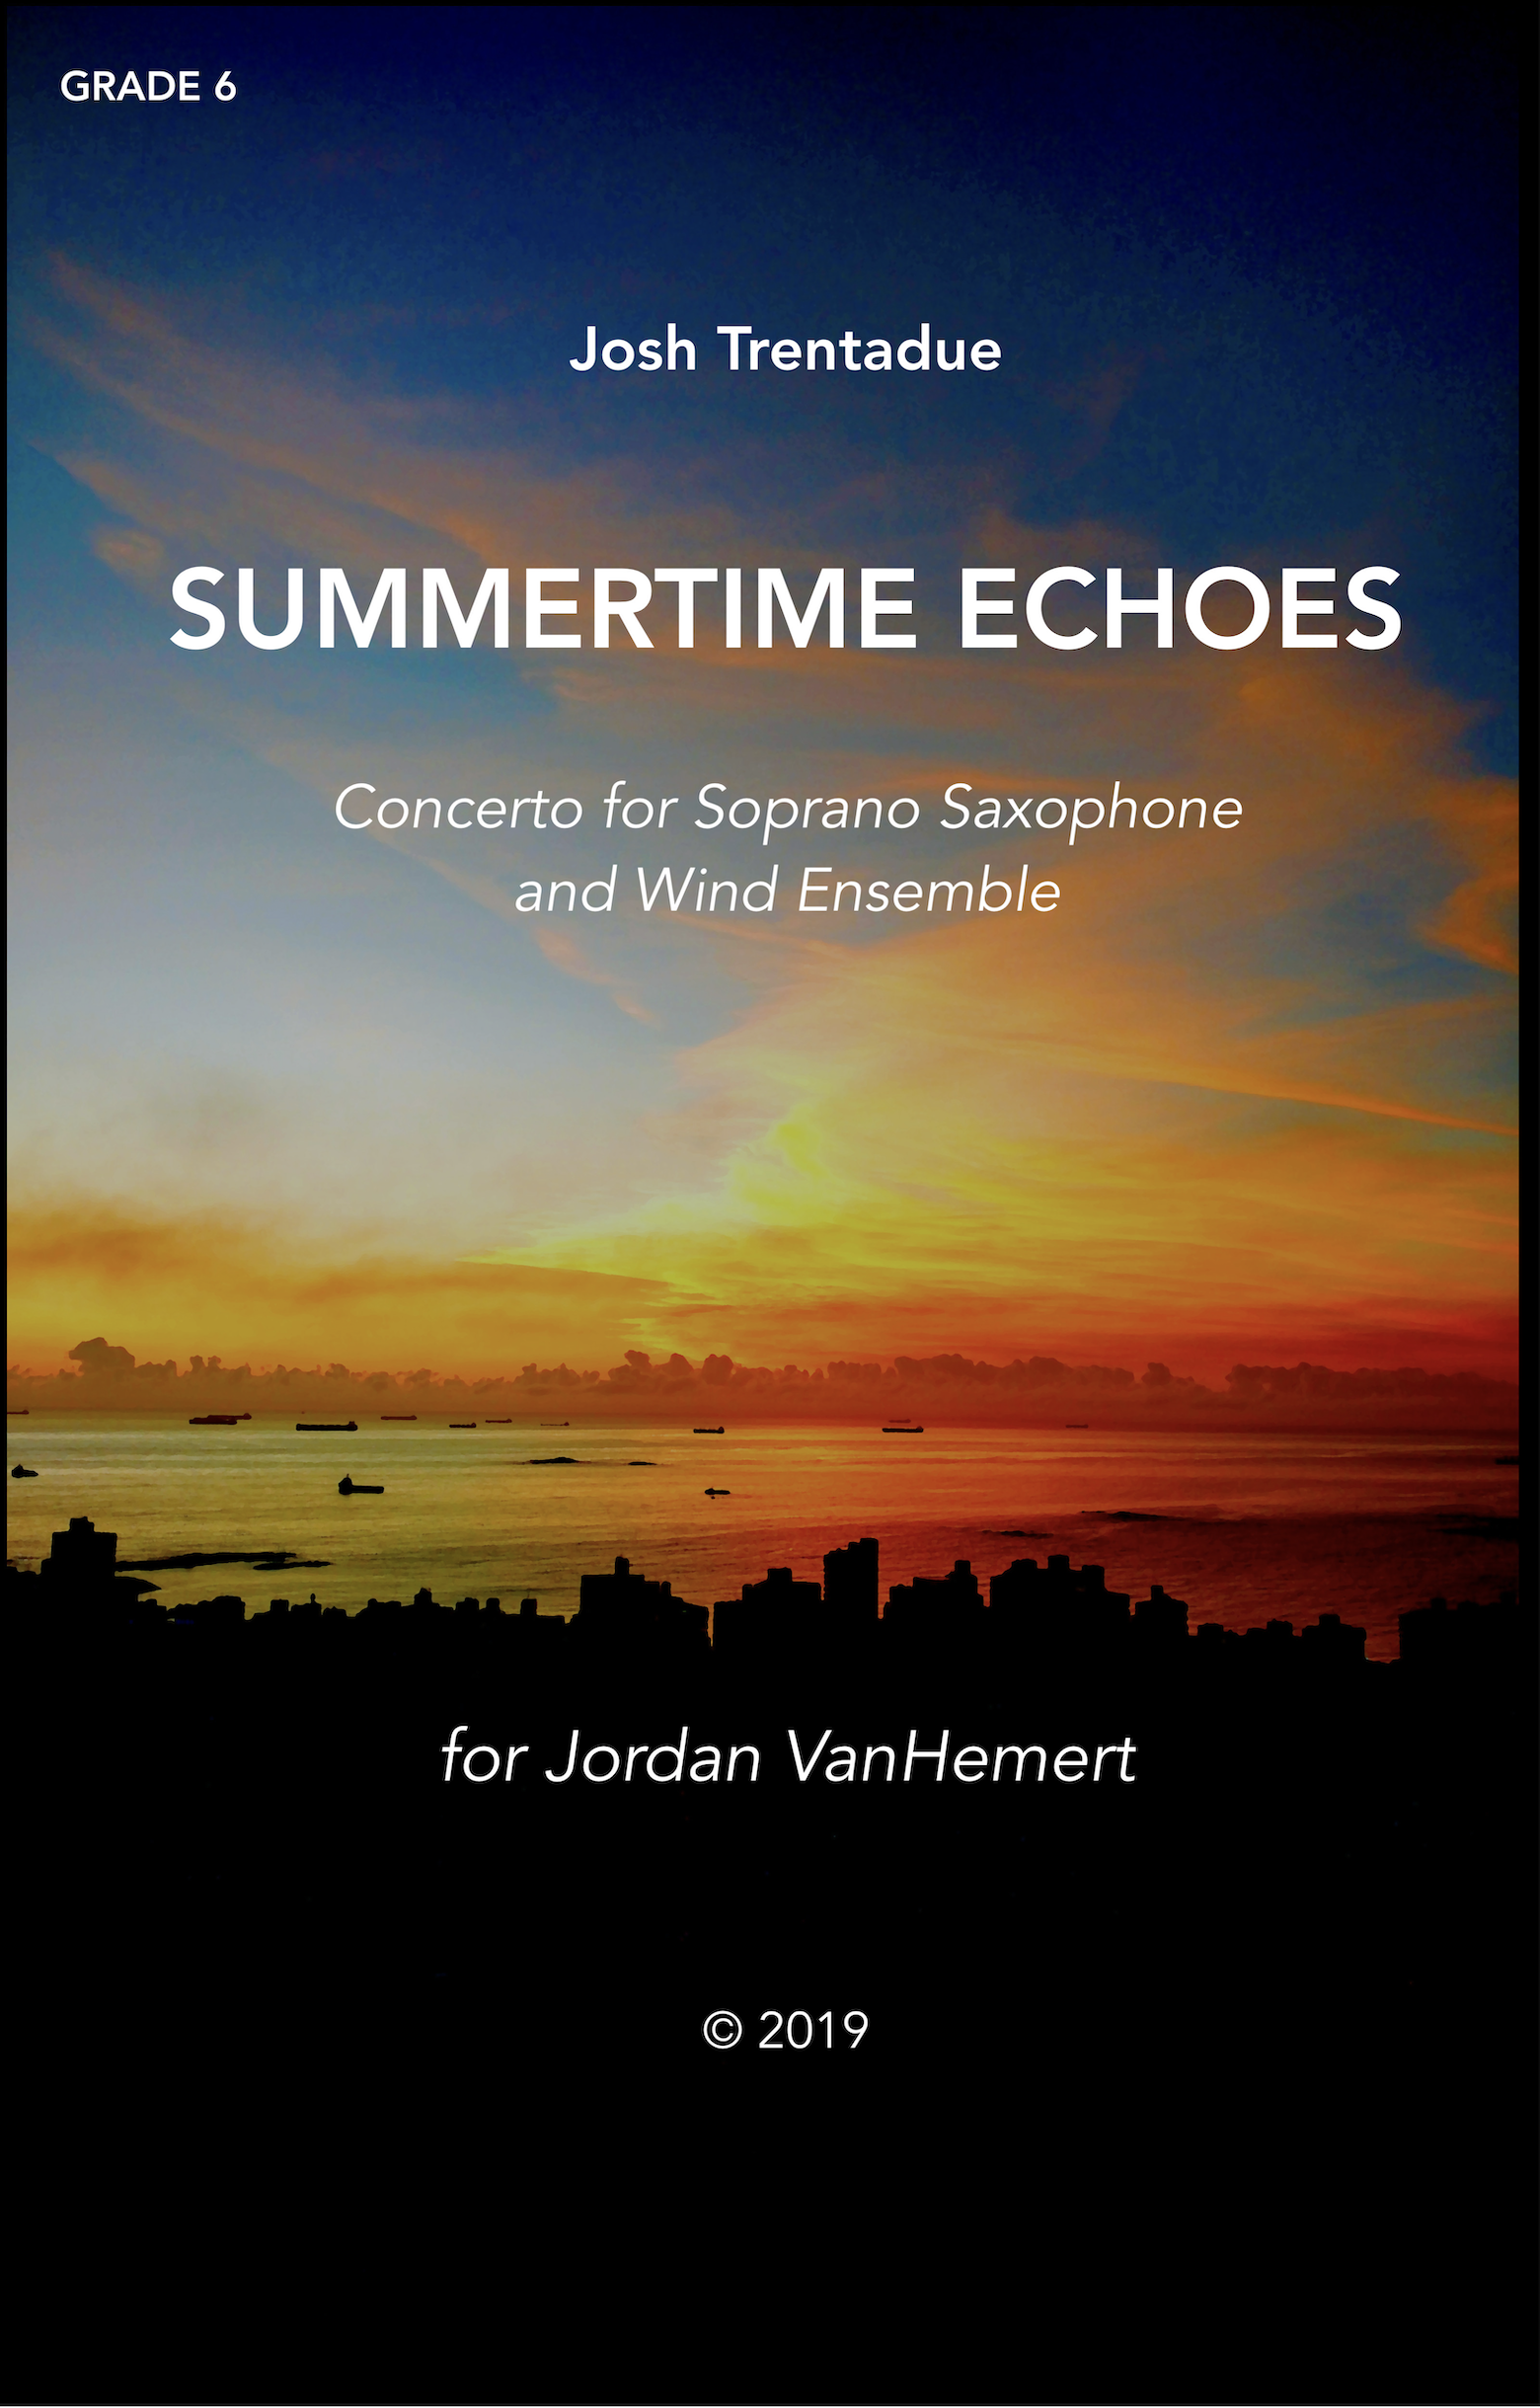 Summertime Echoes (Score Only) by Josh Trentadue